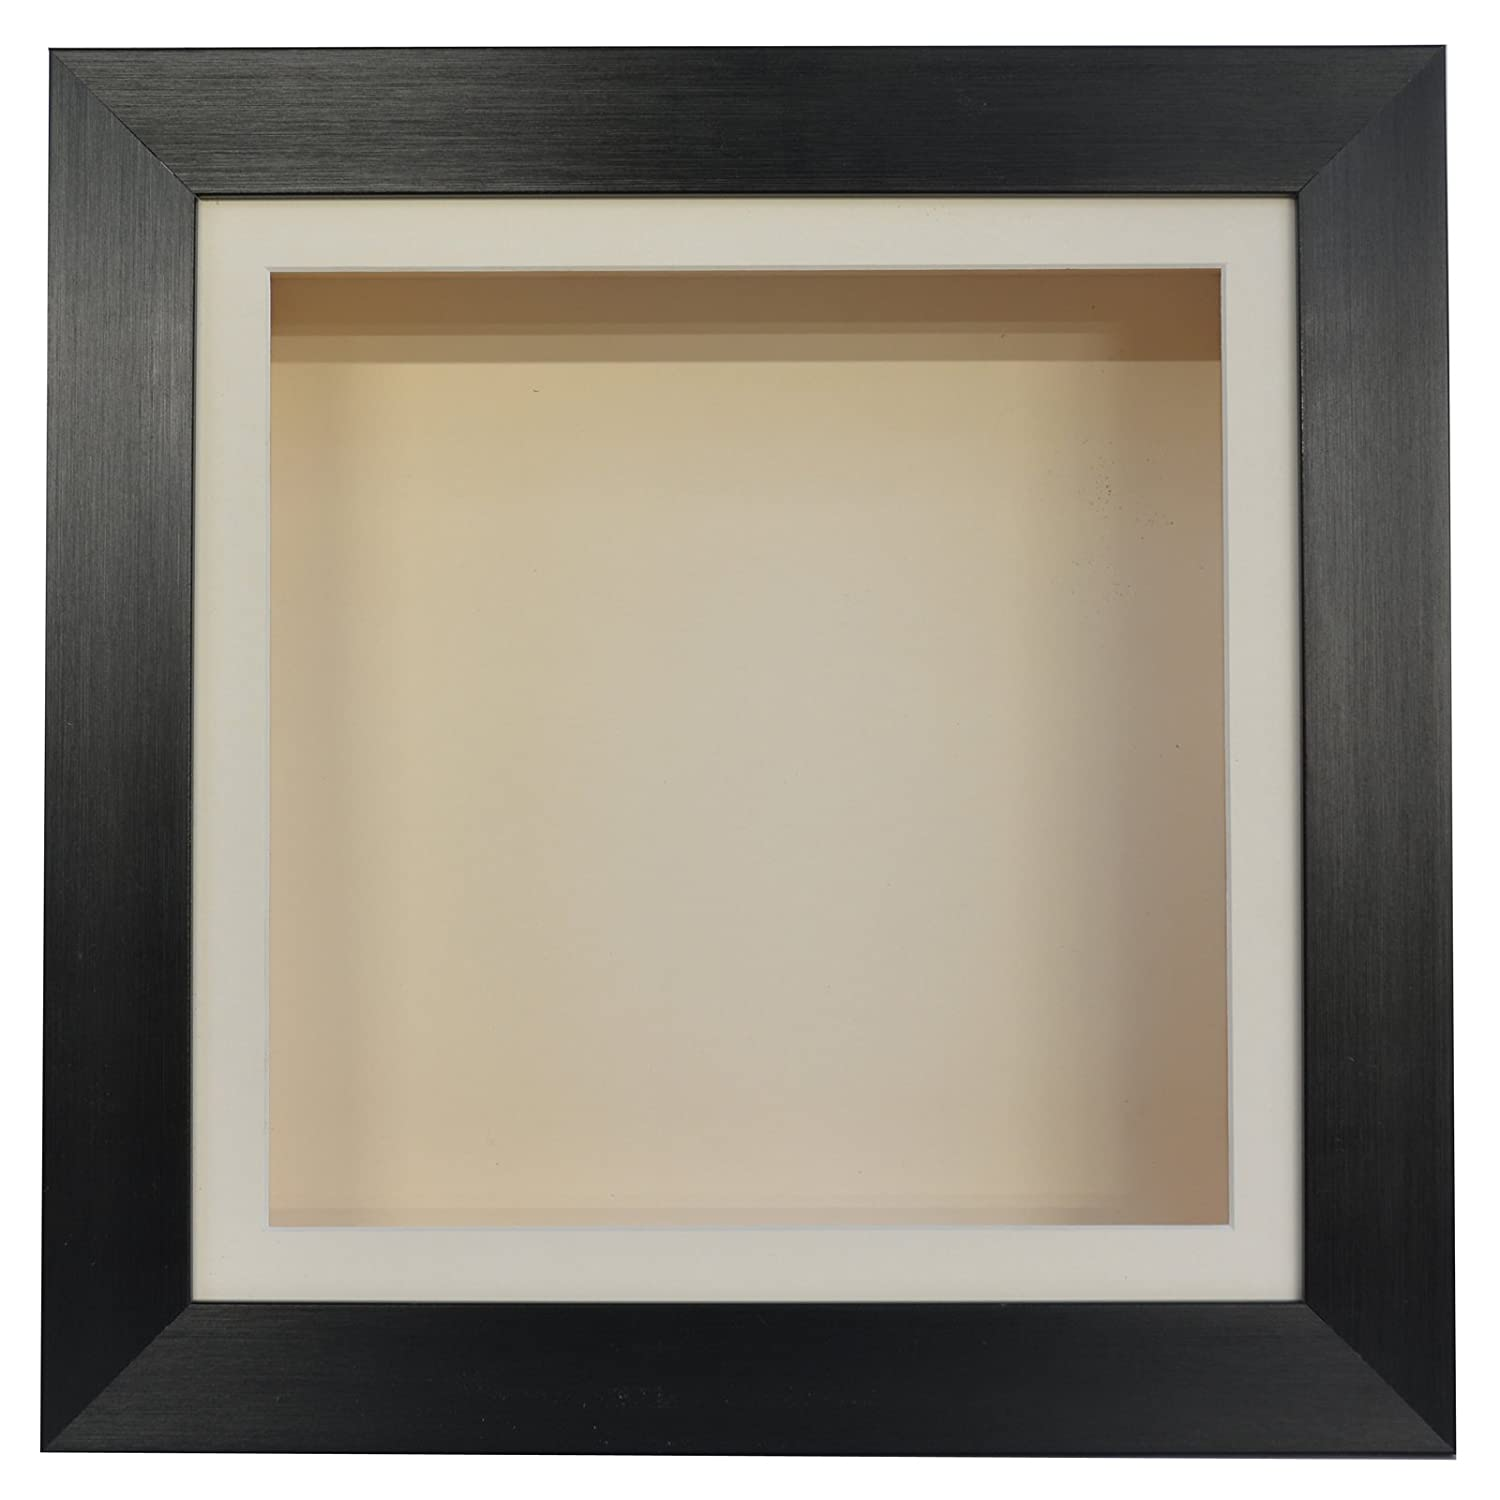 Boldon Framing 3.75 Inch Deep 3D Shadow Box Frame Medals Casts Memorabilia-A4-Champagne ALL SIZES